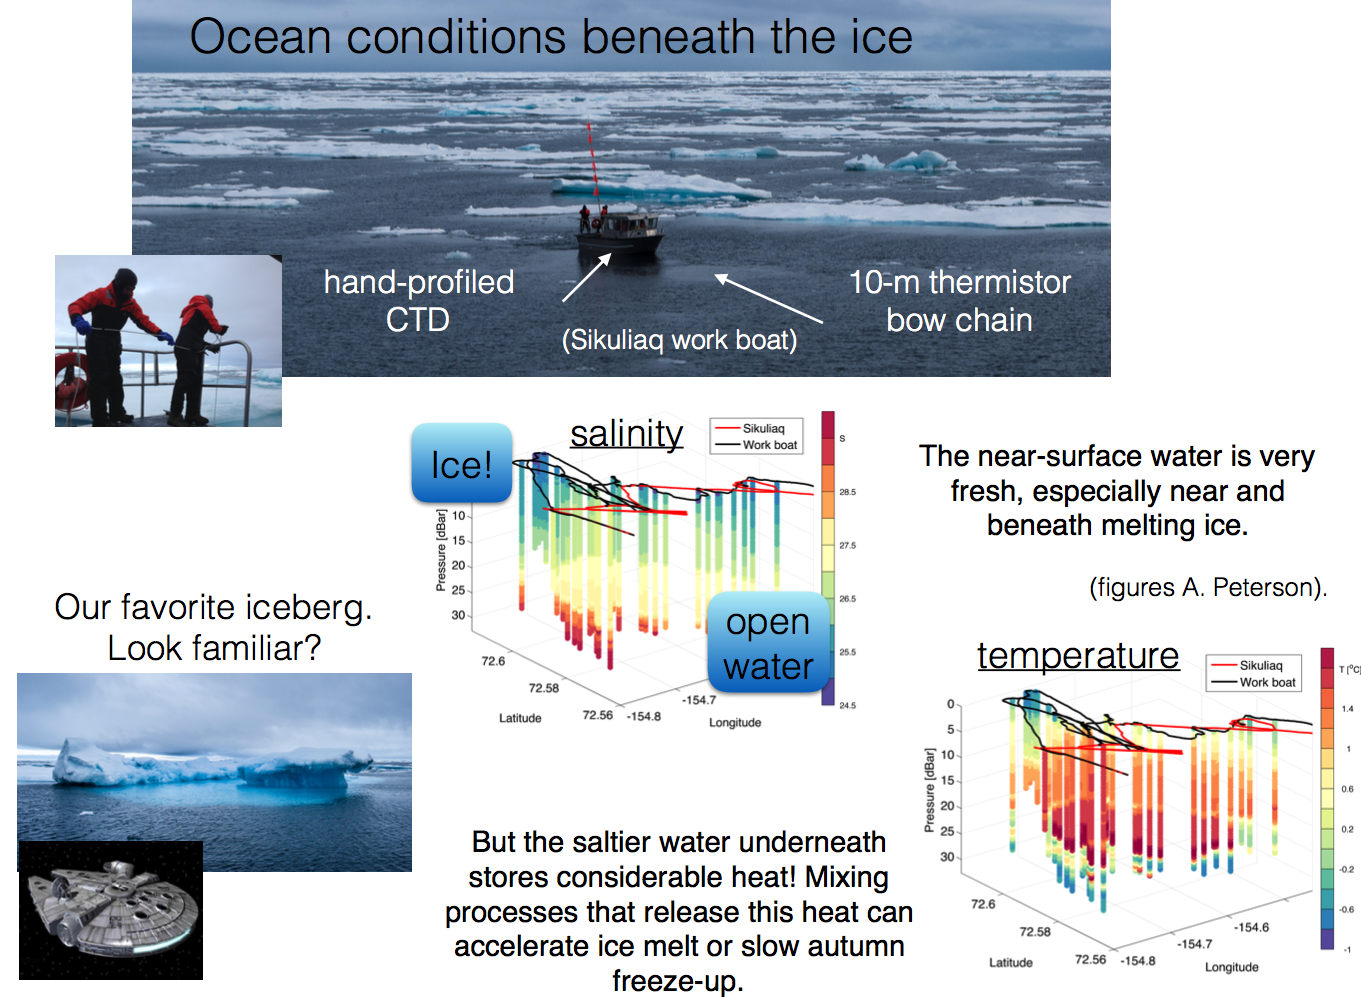 Example of fieldwork conducted near the edge of the late summer sea ice in the Beaufort sea, as part of the 2015 ArcticMix experiment. Here we hand profiled a CTD from the Sikuliaq workboat. The sub-surface temperature maximum here is likely storage of local summer heating, to be re-released in the autumn or possibly later. Understanding the detailed nature and fate of sub-surface heat pockets like this one is an ongoing goal of our high latitude research program.